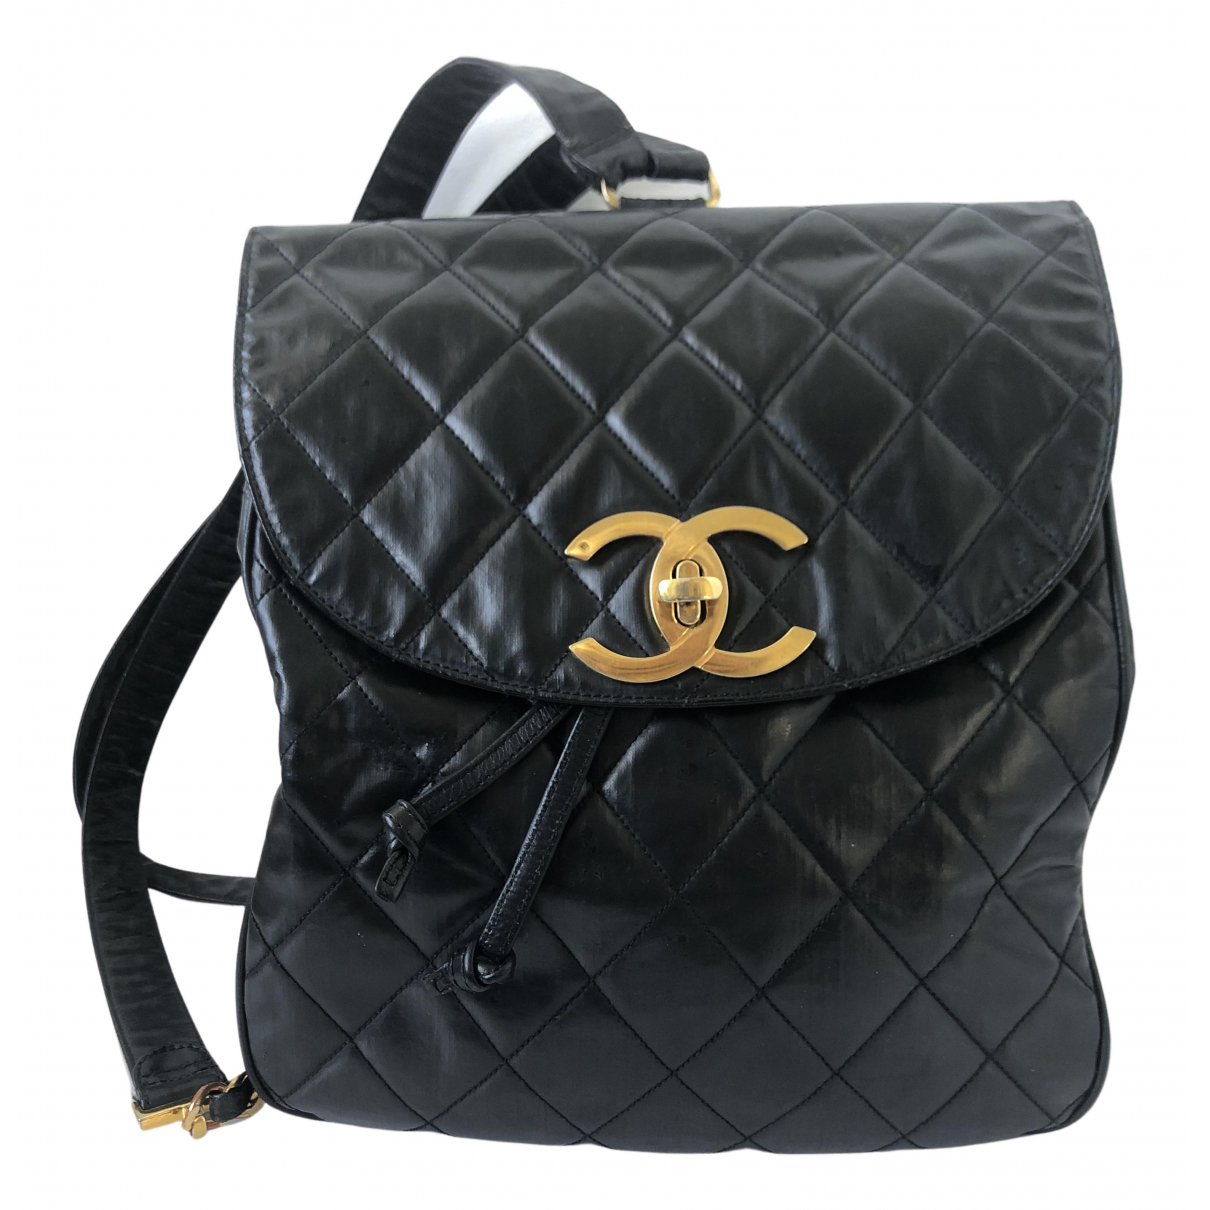 Chanel \N Black Leather backpack for Women \N